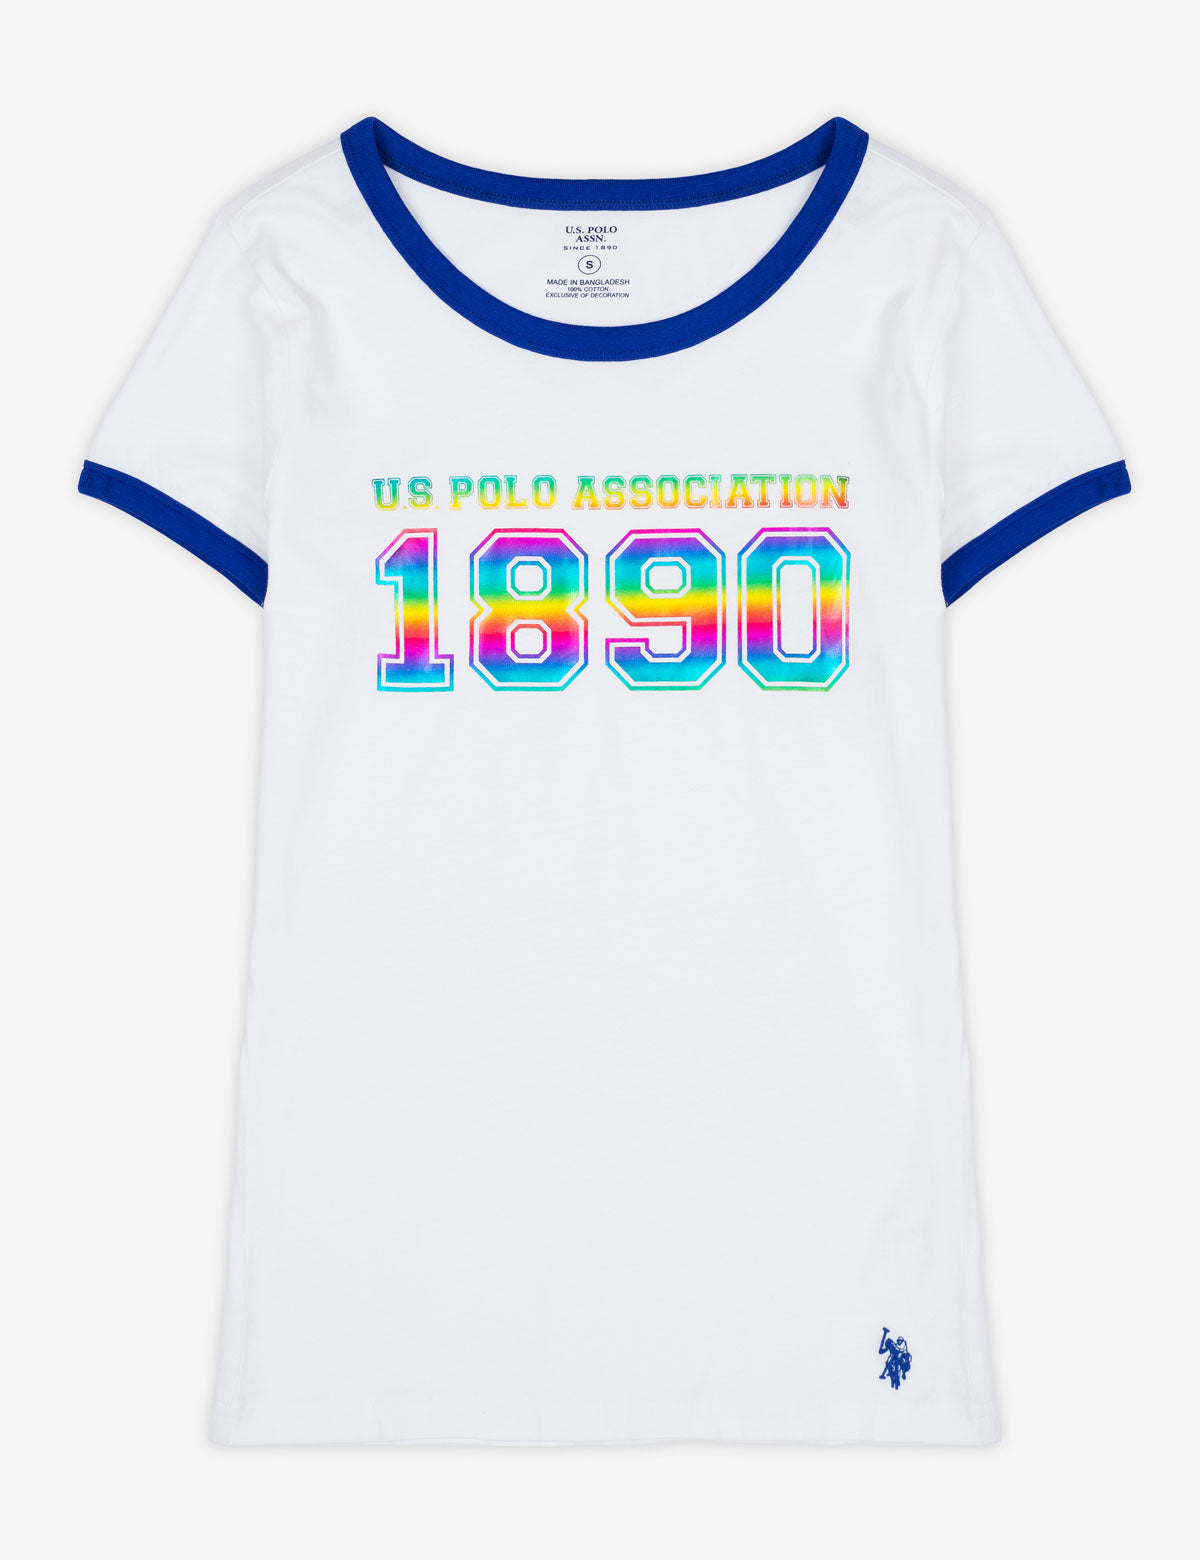 USPA 1890 RAINBOW GRAPHIC T-SHIRT - U.S. Polo Assn.